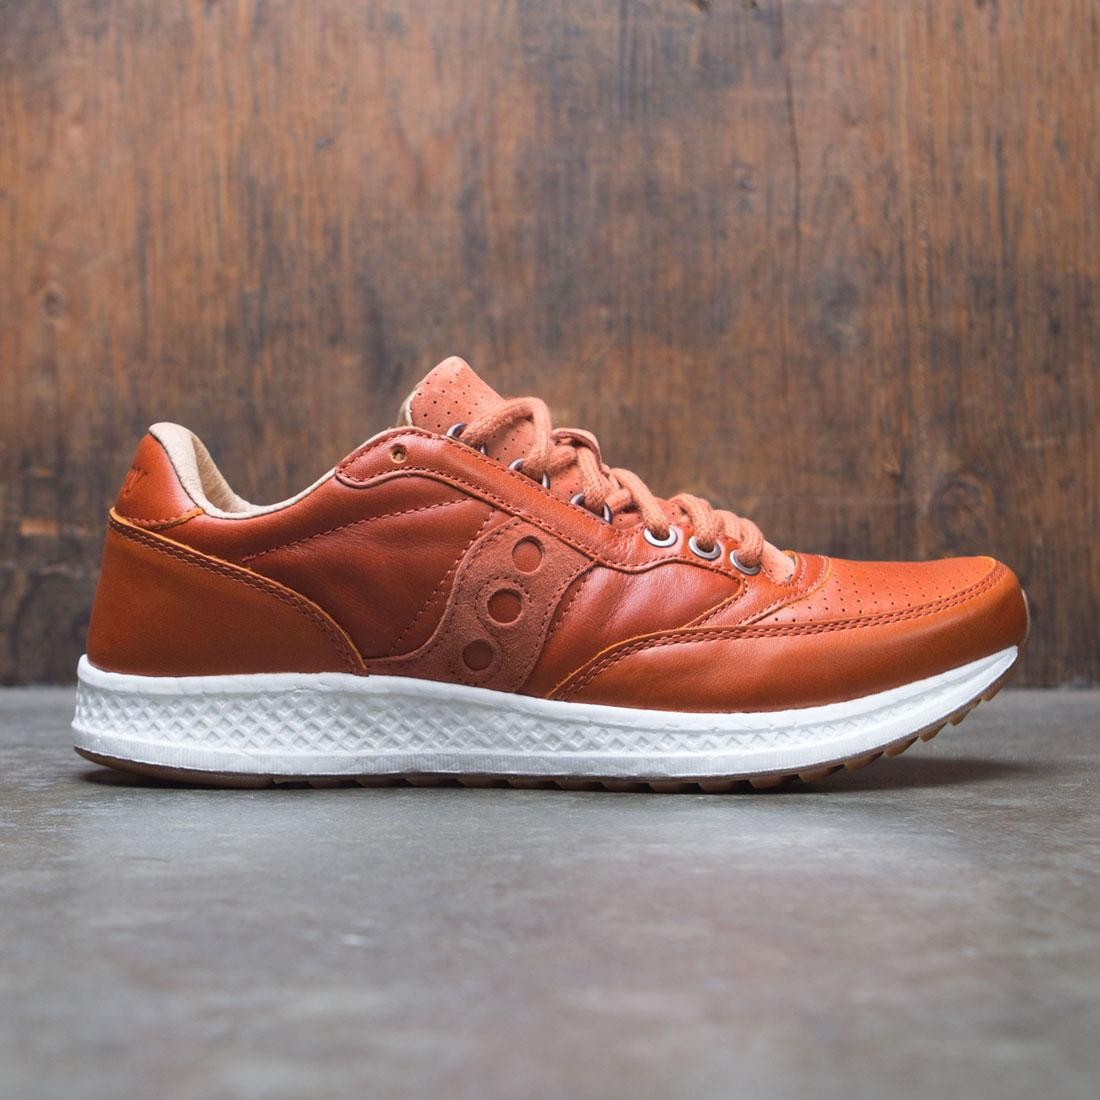 8ab554c735a7 Saucony Men Freedom Runner brown